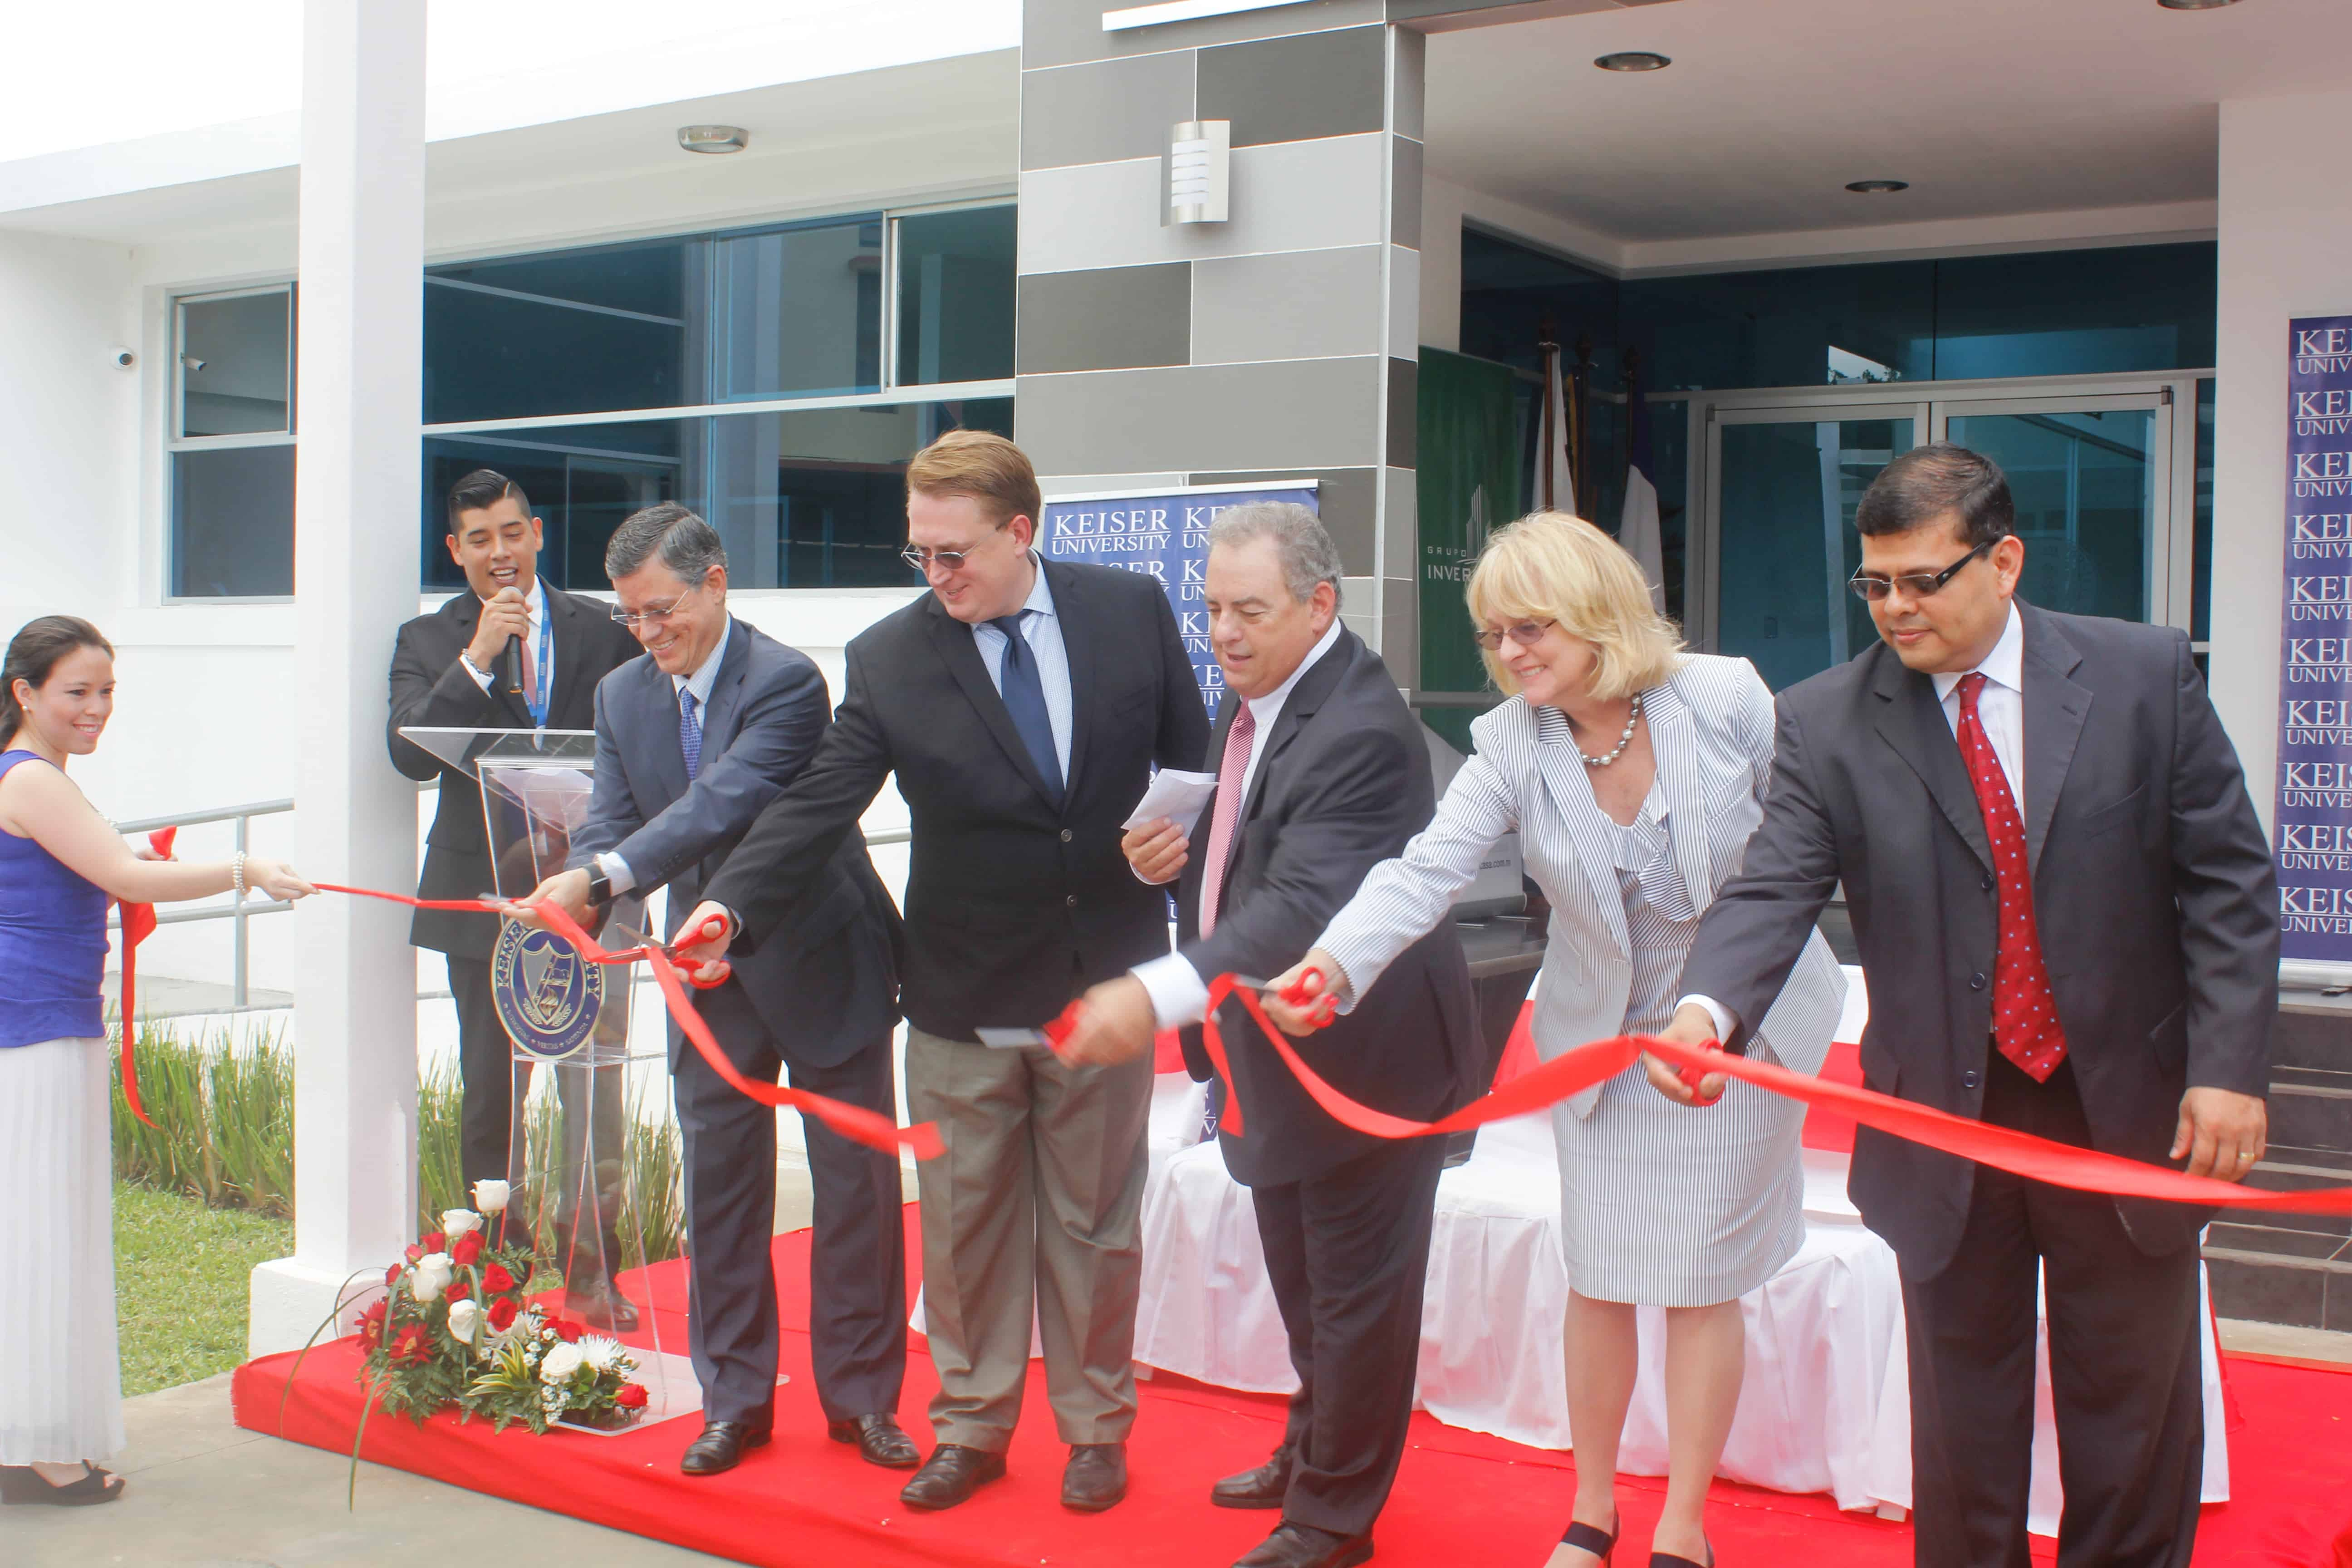 The Latin American Campus Held a Ribbon Cutting for the New Language Institute